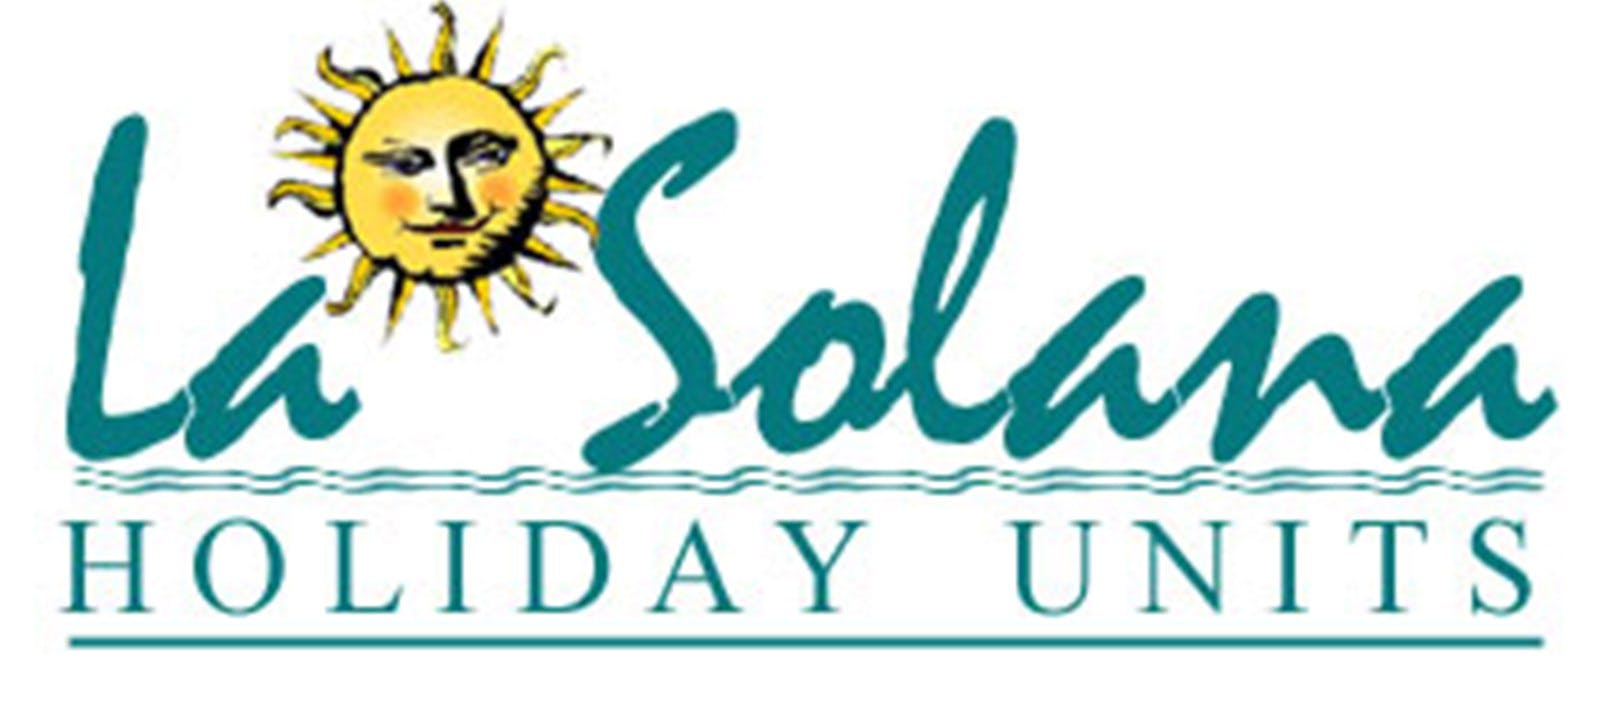 La Solana Holiday Units - Mackay - Queensland